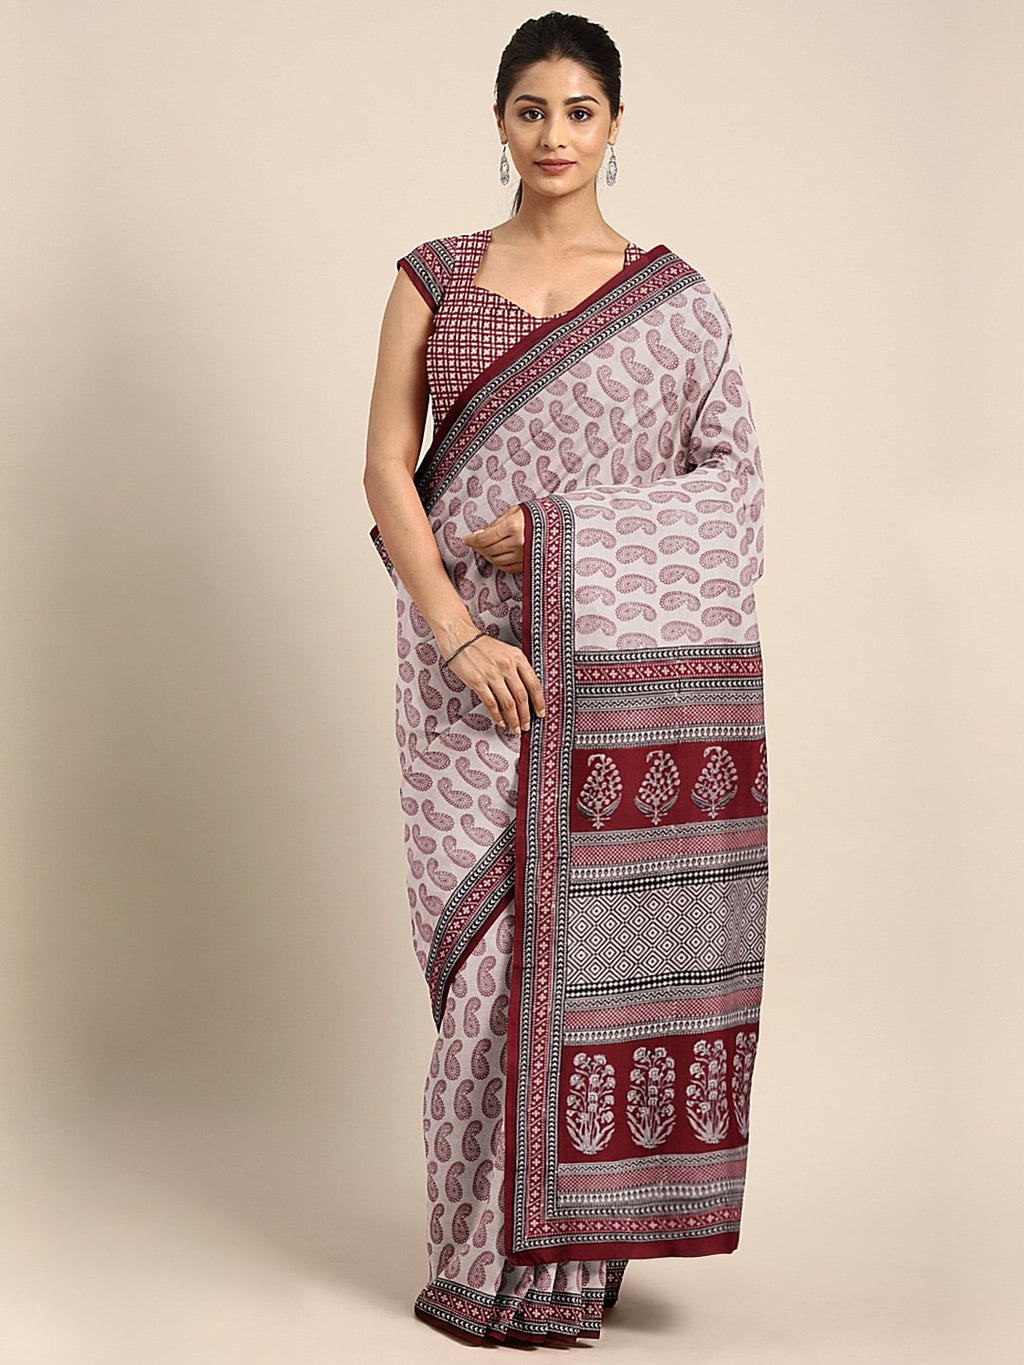 Off-White Maroon Pure Cotton Handblock Print Bagh Saree-Saree-Kalakari India-MRBASA0019-Bagh, Cotton, Geographical Indication, Hand Blocks, Hand Crafted, Heritage Prints, Natural Dyes, Sarees, Sustainable Fabrics-[Linen,Ethnic,wear,Fashionista,Handloom,Handicraft,Indigo,blockprint,block,print,Cotton,Chanderi,Blue, latest,classy,party,bollywood,trendy,summer,style,traditional,formal,elegant,unique,style,hand,block,print, dabu,booti,gift,present,glamorous,affordable,collectible,Sari,Saree,printed,